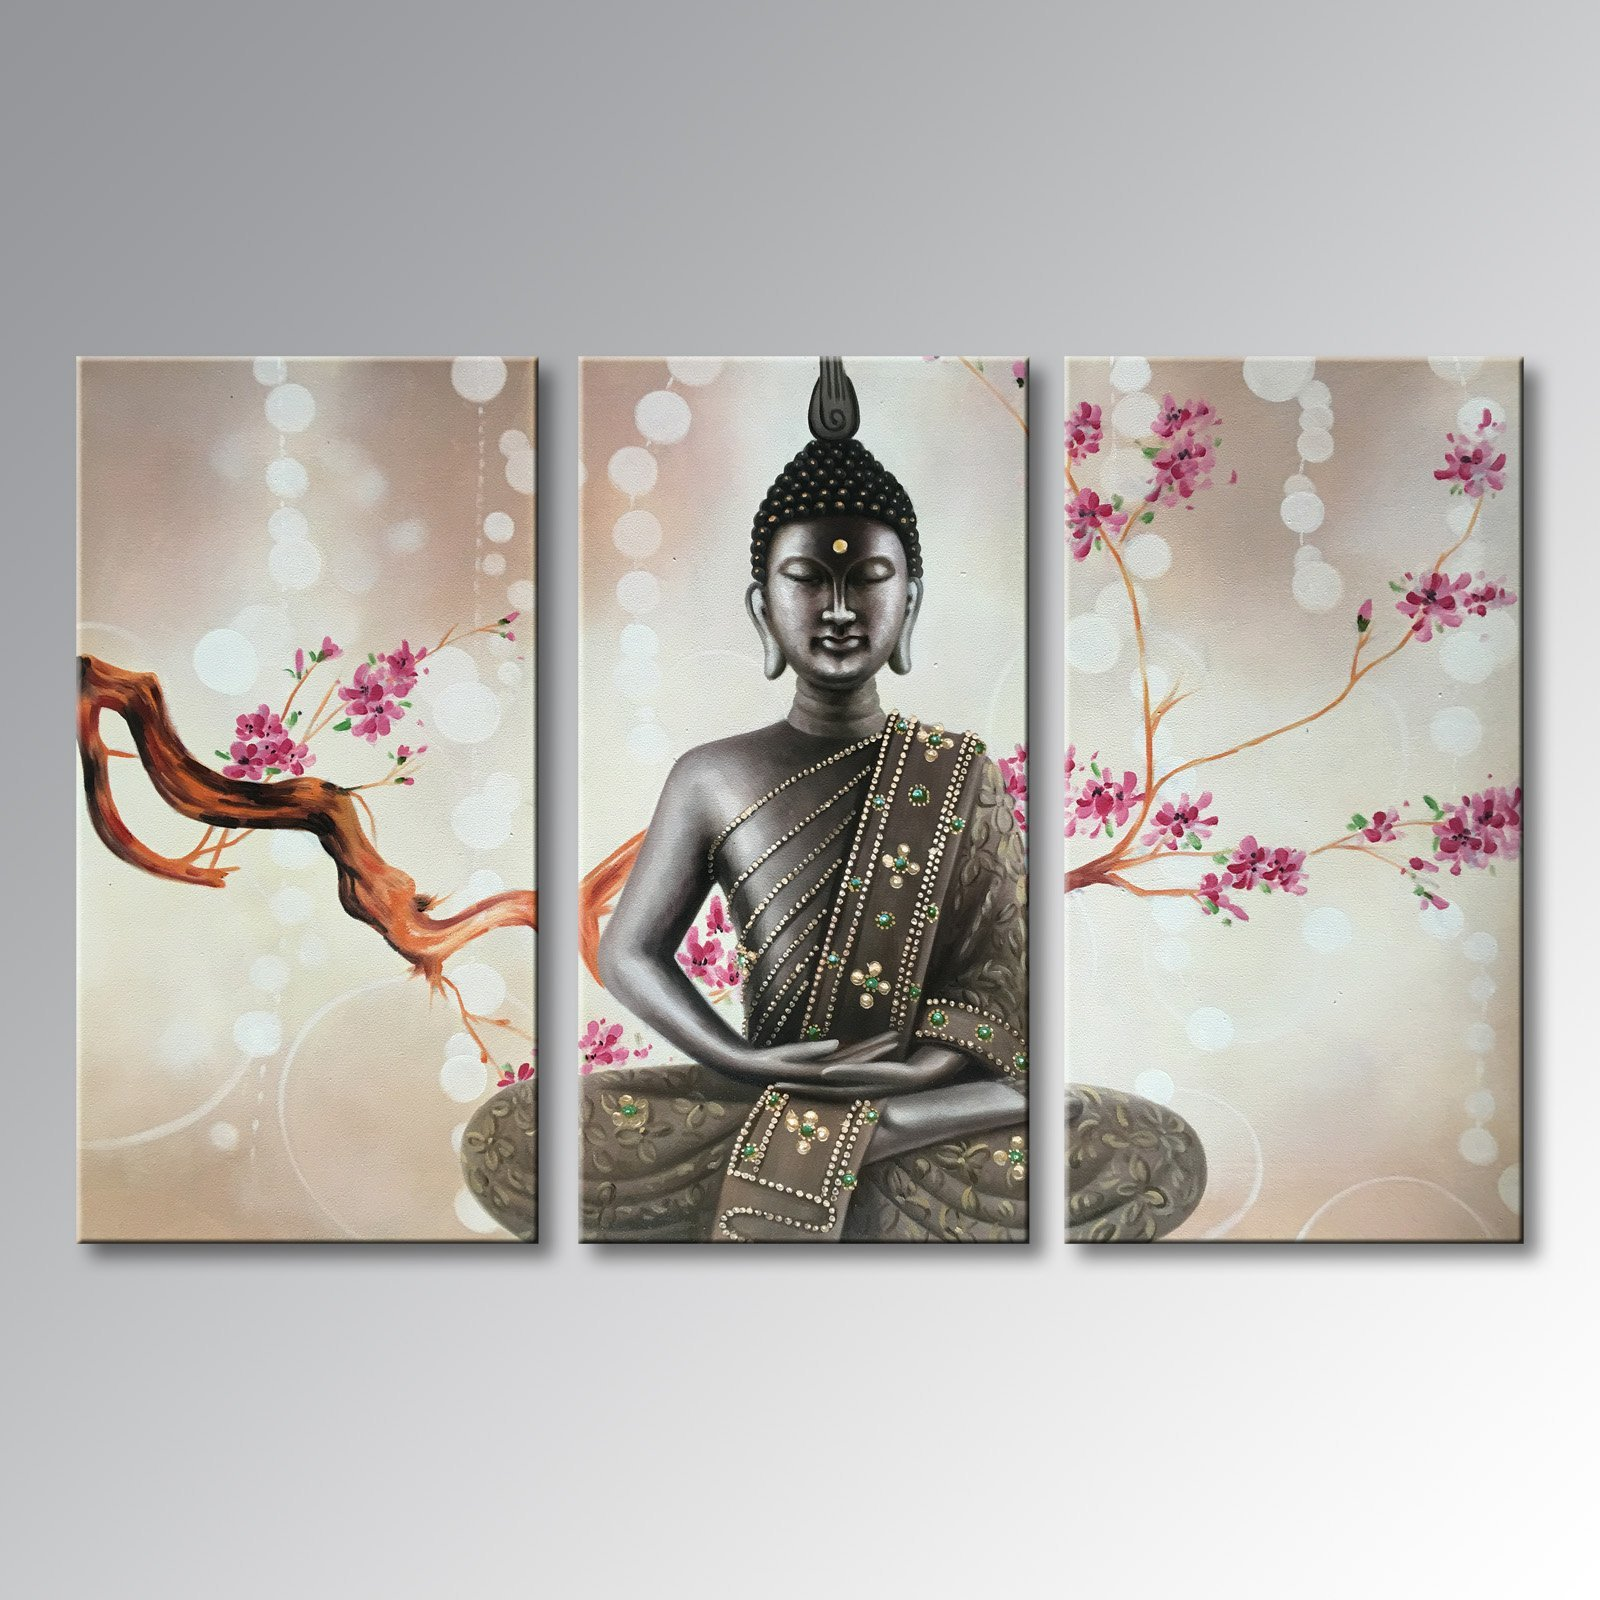 Winpeak Pure Huge Handmade Framed Canvas Art Buddha Oil Paintings on Canvas 3 paenl Wall Decor Picture Artwork Hanging For Decoration Stretched Ready to Hang (72''W x 48''H (24''x48'' x3pcs))